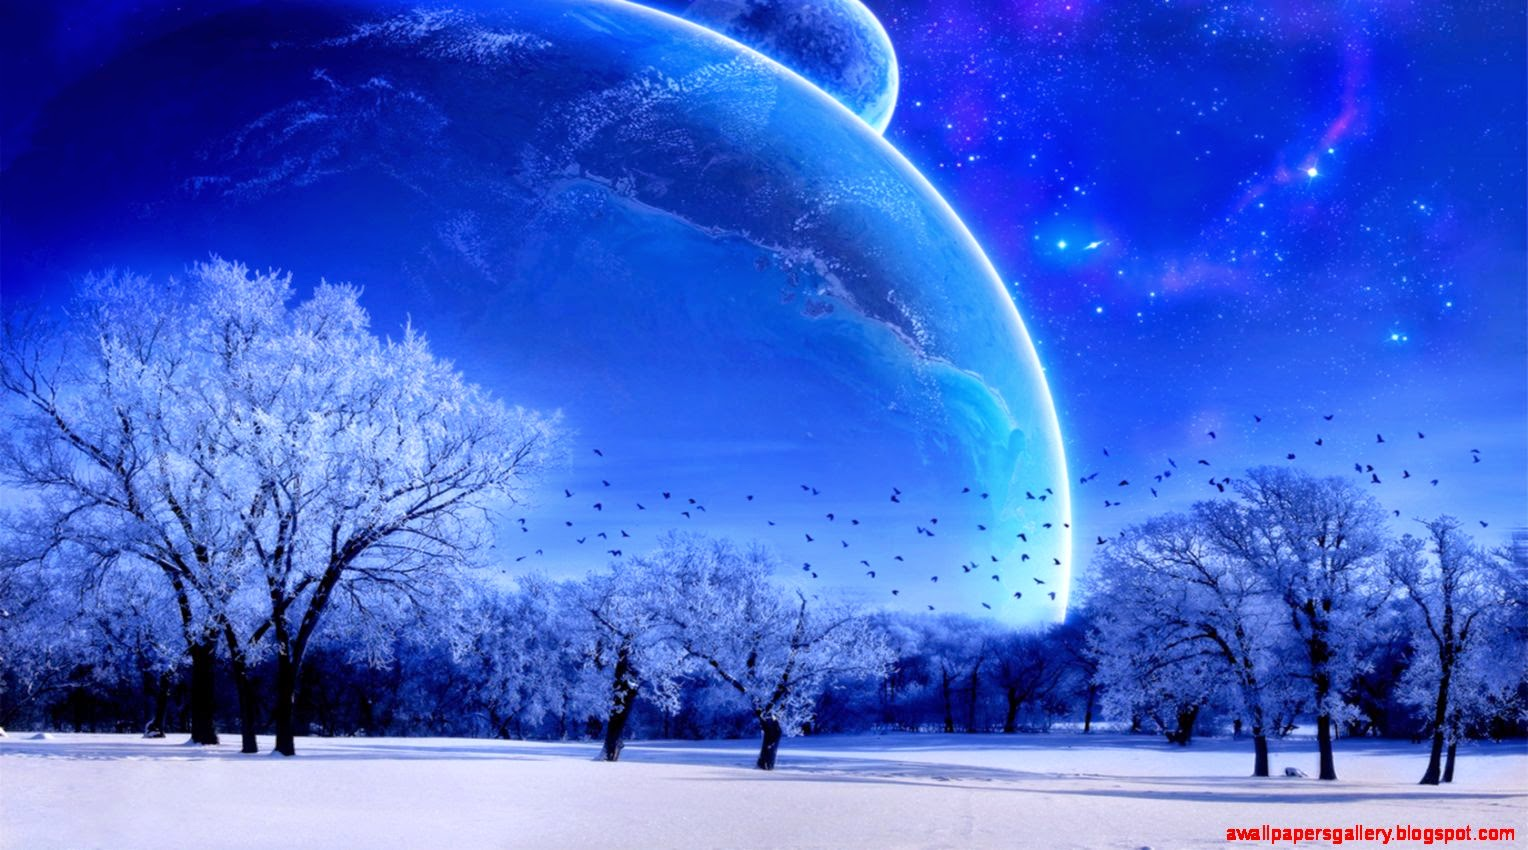 Fantasy Dreamy World Space Scene Picture Wallpaper Wallpapers